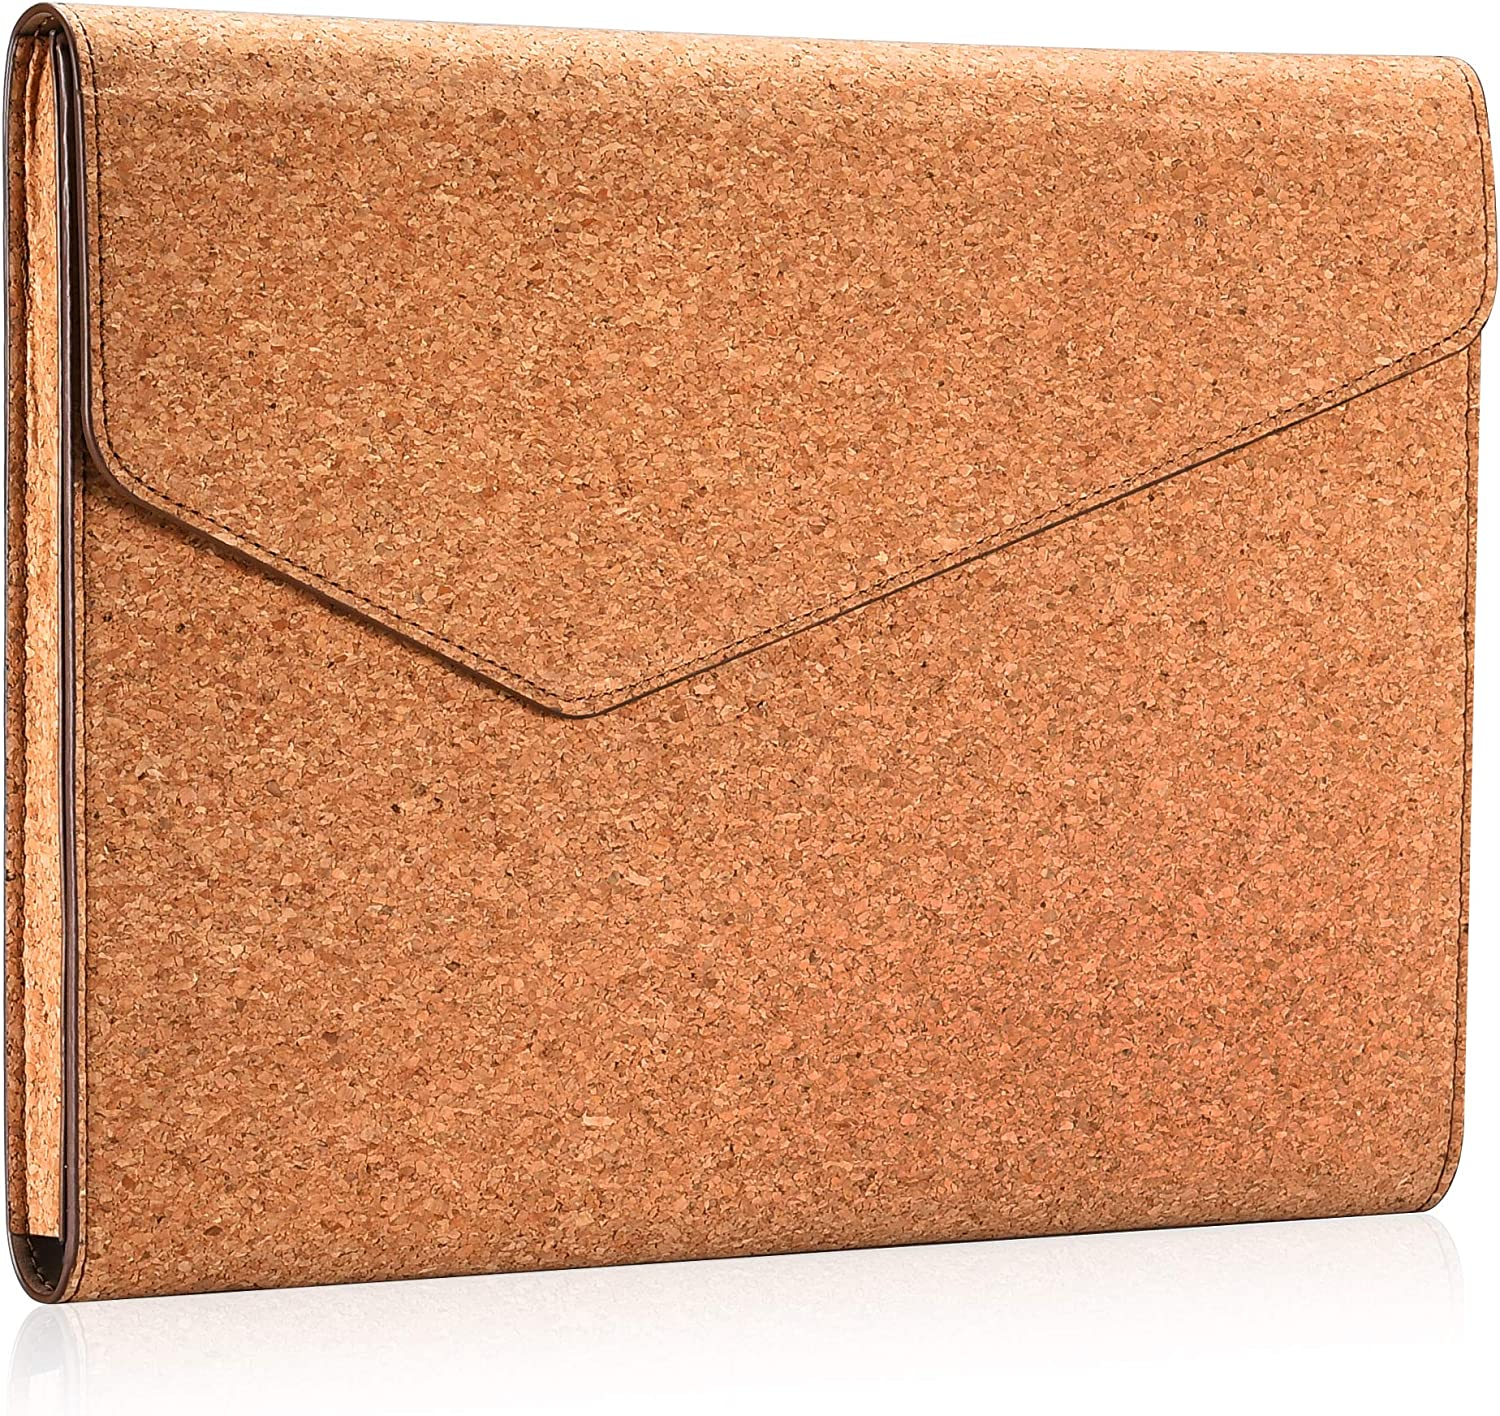 Aothia Eco Cork Laptop Sleeve Case Compatible with New MacBook Air 13-13.3 inch Retina Display A1932,MacBook Pro with USB-C Late 2016-2019,Notebook Computer,Ipad,Leather Envelope Case (Cork)